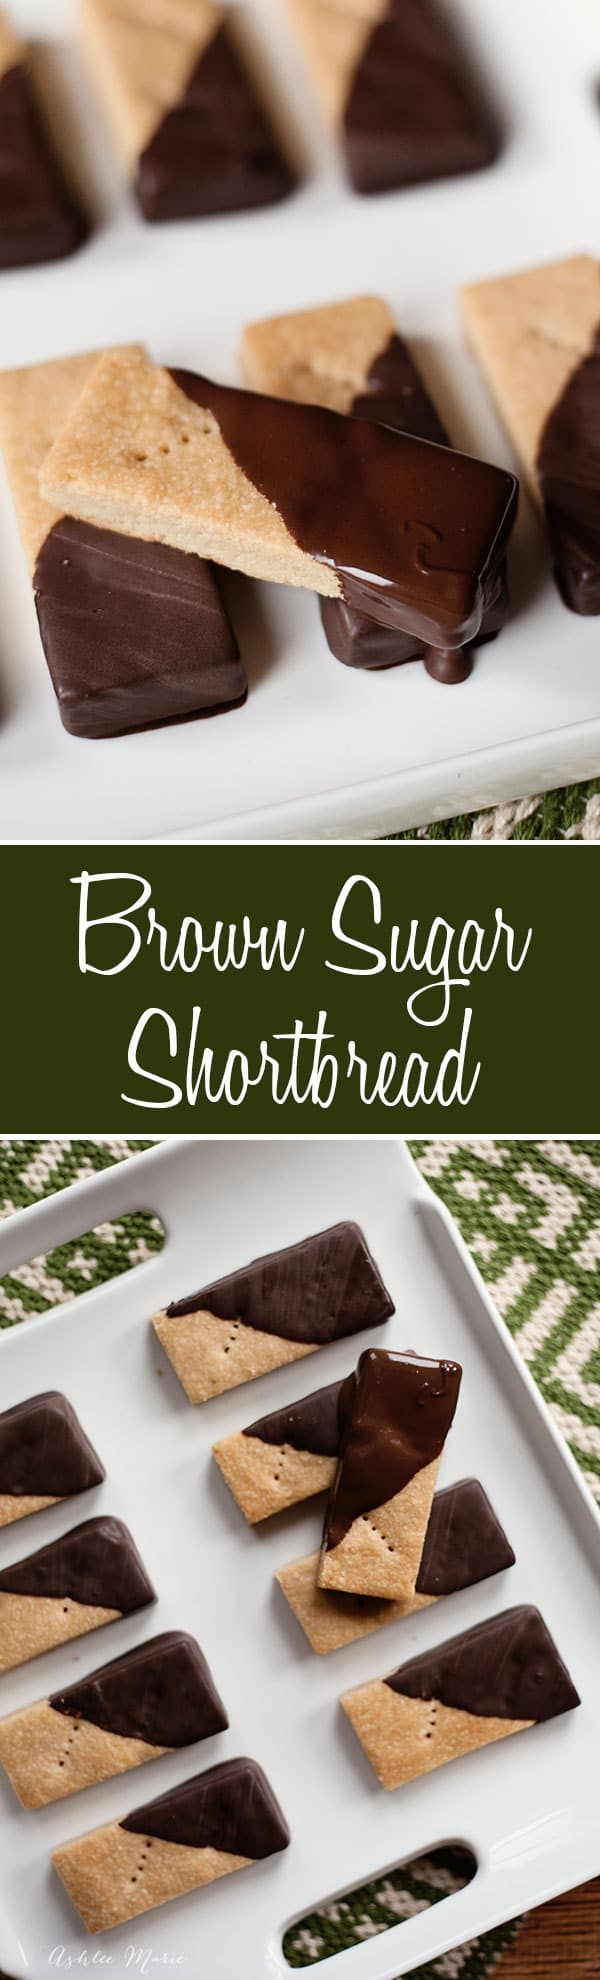 It doesnt get much better than shortbread cookies, crunchy and sweet, my favorite is brown sugar short bread, it adds a depth in flavor that I love